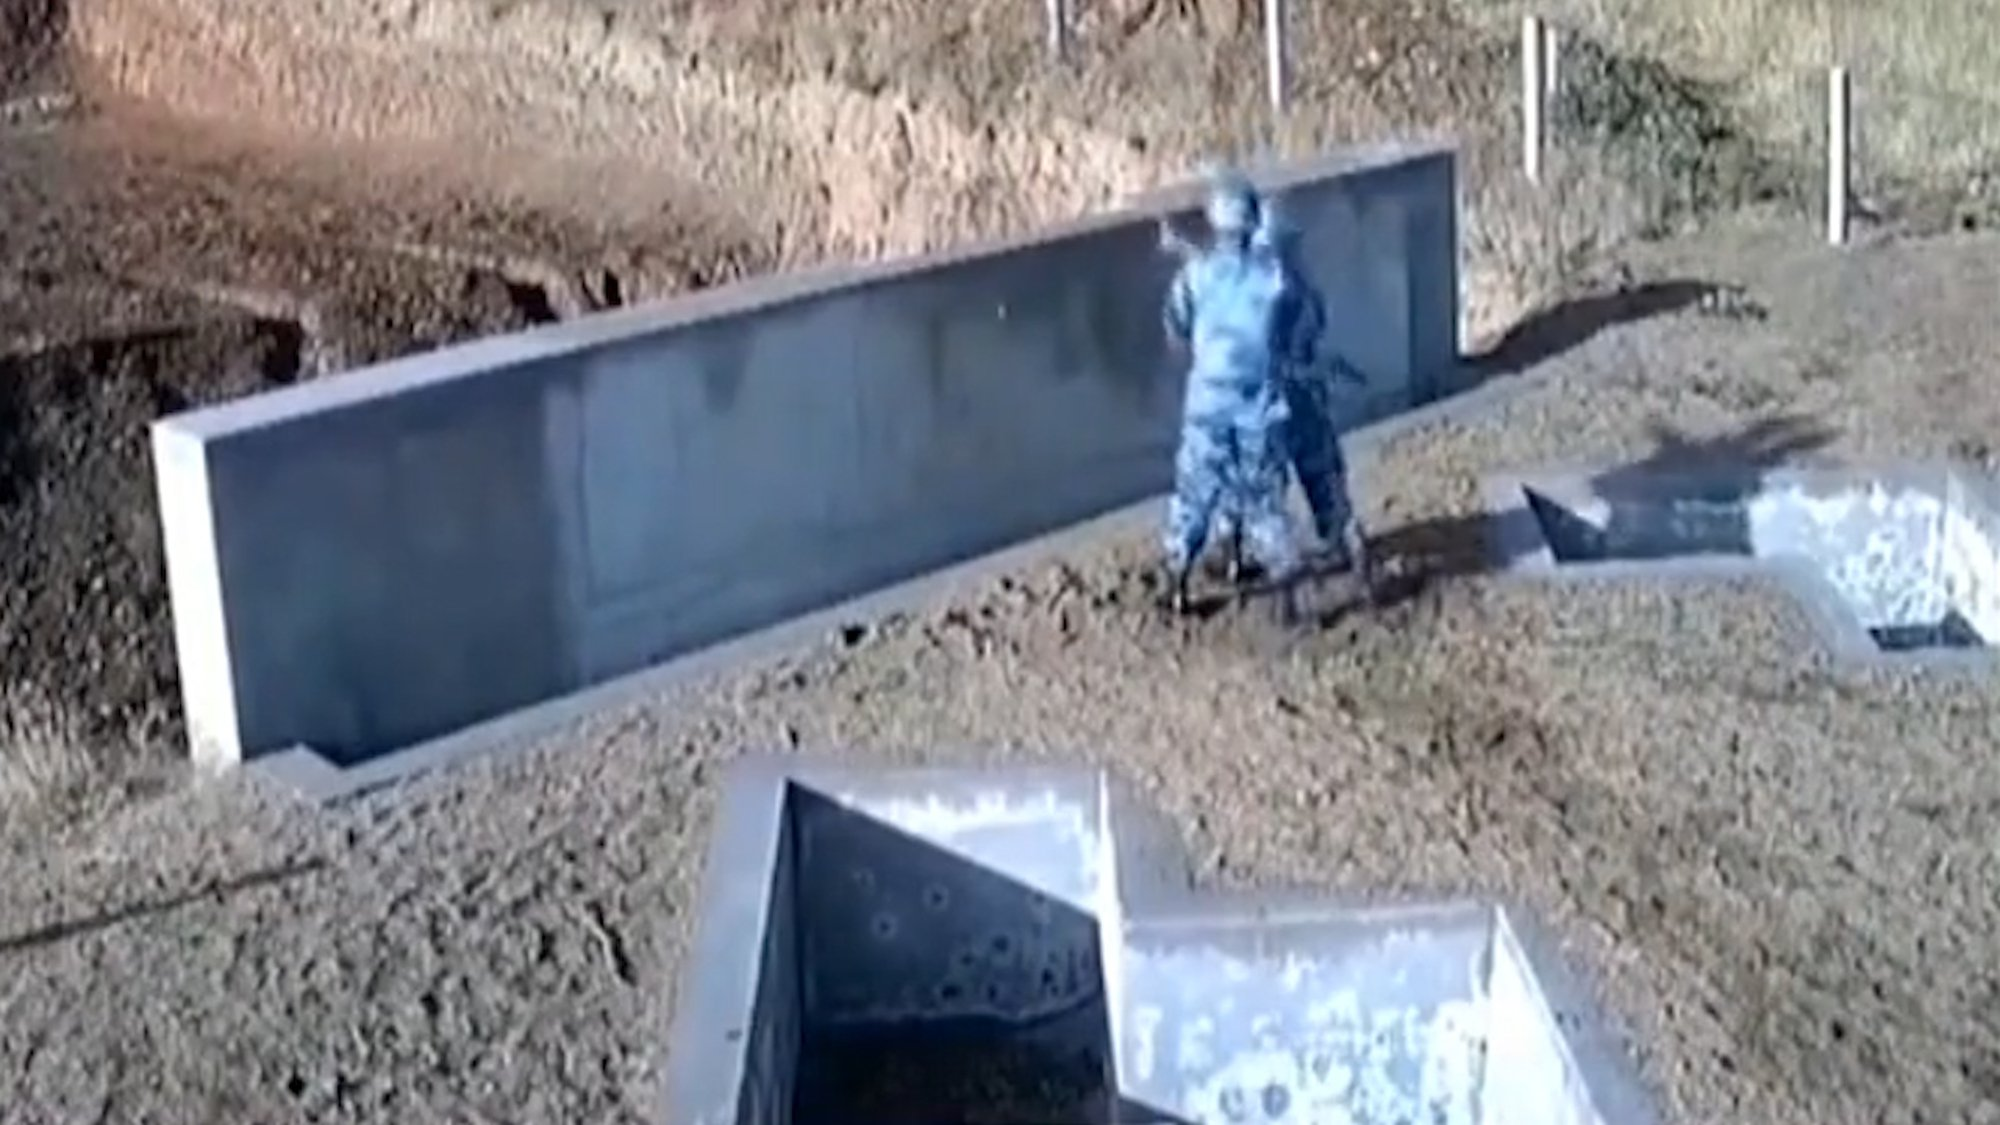 """Pic shows: The nervous cadet throwing the grenade into the wall barrier causing the grenade to land and explode close to him. The Chinese military has released footage showing a nervous air force cadet nearly blowing himself and his instructor up following a failed hand grenade toss. The video carried by state broadcaster China Central Television shows the close call at the People???s Liberation Army Air Force Harbin Flight Academy. The training facility is located in the city of Harbin, capital of north-eastern China???s Heilongjiang Province. The cadet and his new group of trainees were learning basic hand grenade throwing techniques when the blunder happened, reports said. Footage from the academy training ground shows the unnamed newbie soldier reporting to his instructor, Xu Hao, who is standing next to a protective wall where the exercise was to be held. Following a short conversation, the cadet hurls the grenade but gets his angles all wrong, causing the explosive to strike the low wall and bounce back towards them. The hand grenade rolls onto the ground about two metres (six feet) away from them, and the quick-thinking instructor grabs the cadet and leaps into a concrete foxhole nearby. Just three seconds after the bungling solder???s initial throw, the grenade explodes. Xu said: """"The incorrect angle of his wrist during the throw caused the hand grenade to hit the wall to rebound to our left. """"I recognised an emergency situation, so I grabbed him and we jumped into the foxhole as discussed beforehand."""" Had it not been for Xu???s actions, the pair might have suffered serious injuries due to the grenade???s effective kill radius of six metres - roughly 20 feet. The academy said the cadet all passed in the end."""